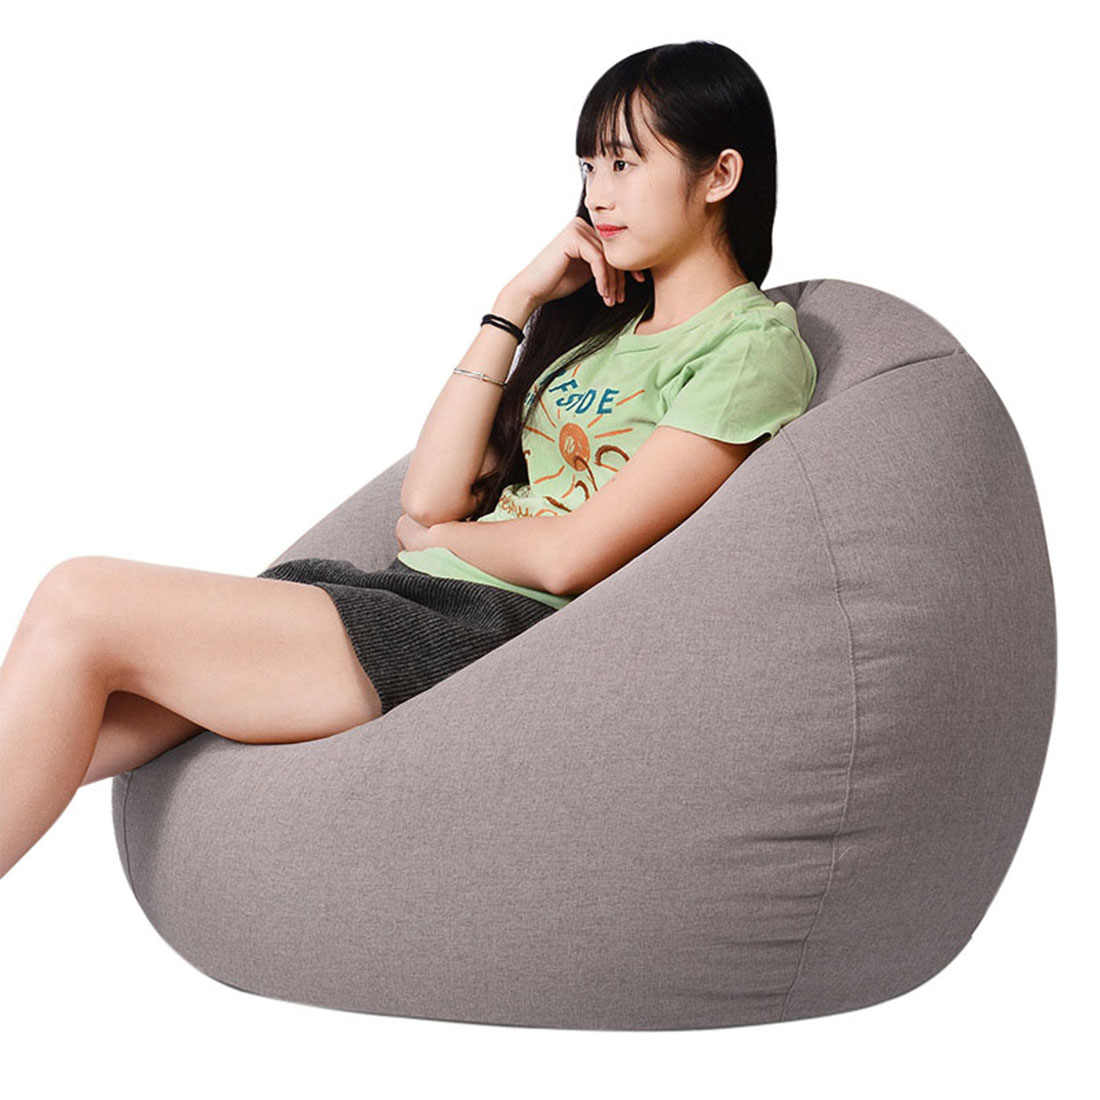 Awesome Living Room Lounger Bean Bags Sofas Chair Adults Kids Bean Bag Chair Sofas Bedroom Lazy Sofas Living Room Soft Bean Bags S M L Lamtechconsult Wood Chair Design Ideas Lamtechconsultcom